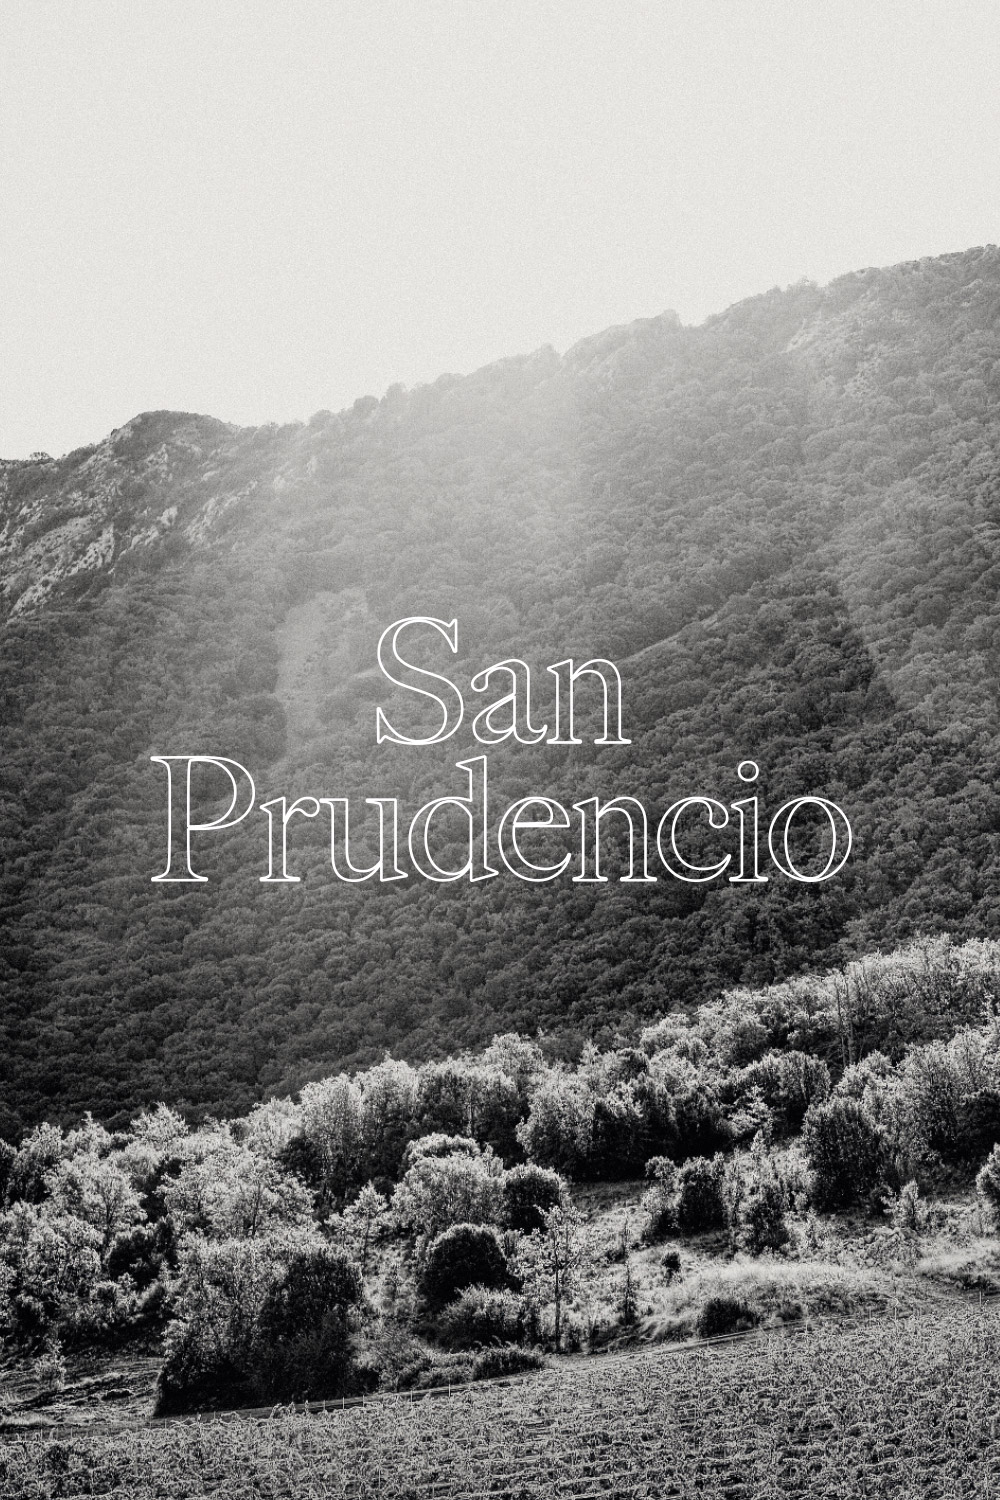 In a land of castles and conquerors, atop mountains, Ruben Saenz grows the vines that are the pride of Bodegas San Prudencio. Perseverance, centuries of know-how and braveness have resulted in vines growing at an unlikely high altitude and wines that preserve the traditions and natural greatness of this land.  - APPELLATION RIOJA ALTA